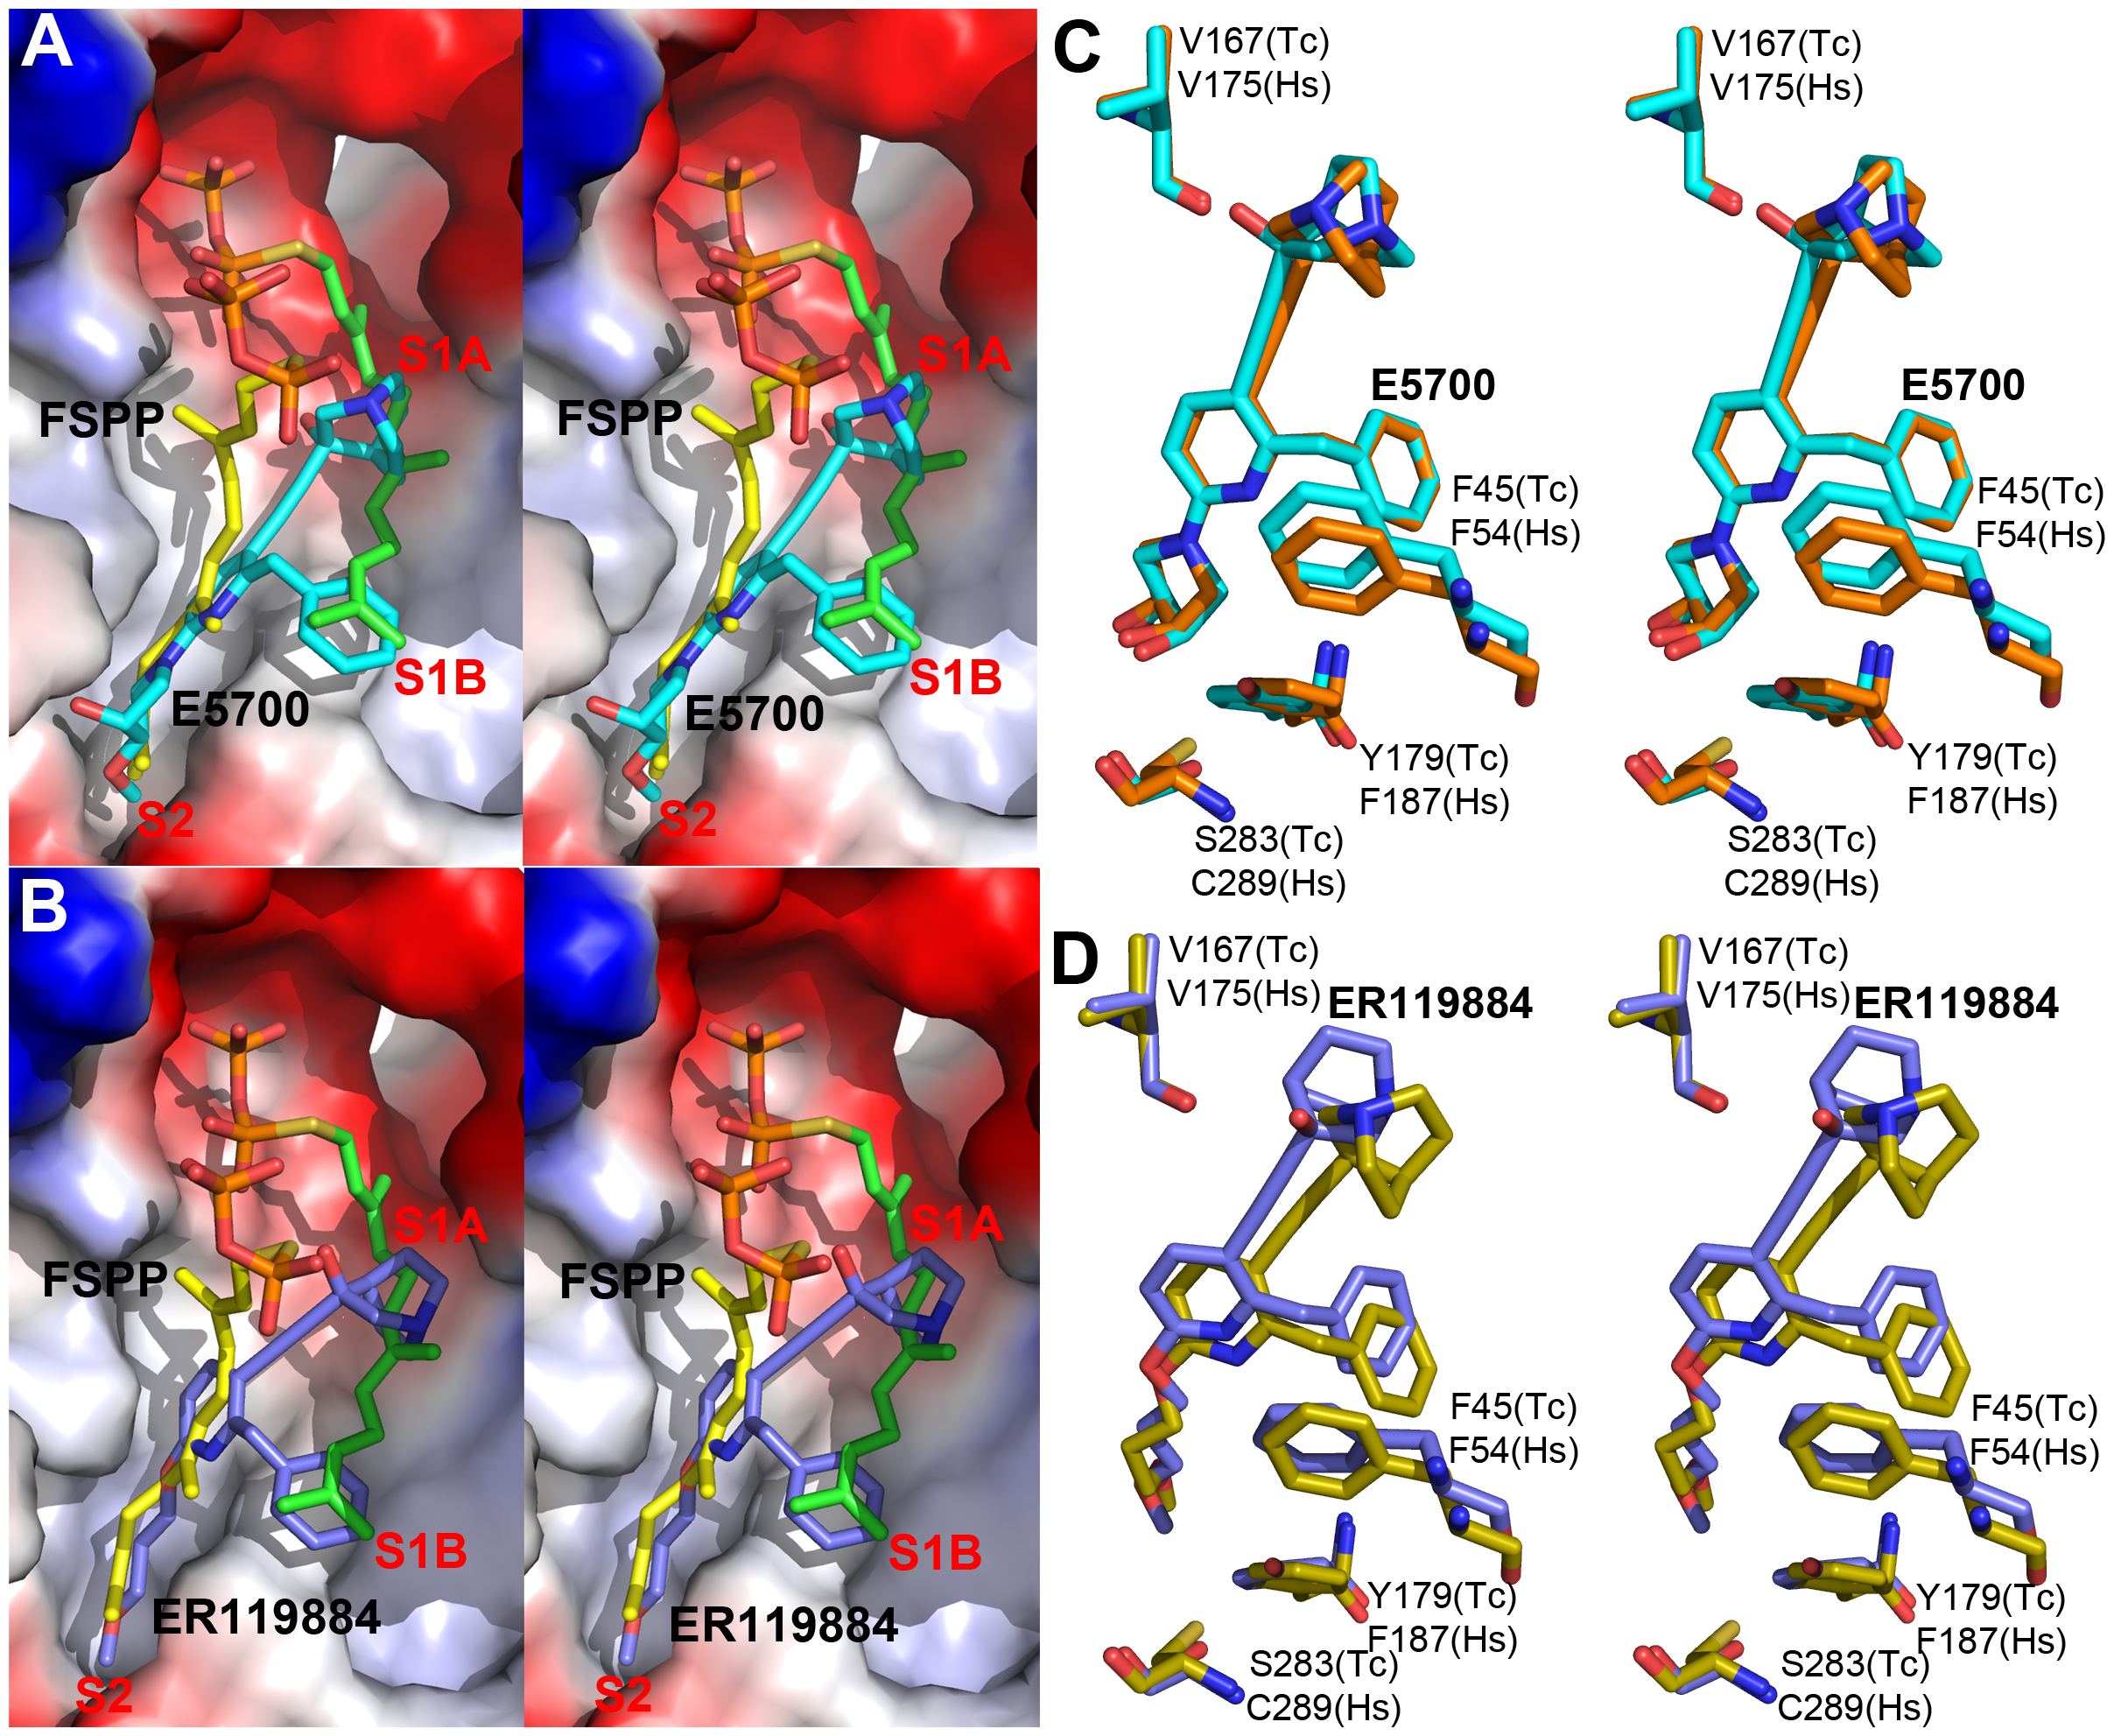 Crystal structures of E5700 and ER119884 bound to TcSQS and HsSQS.